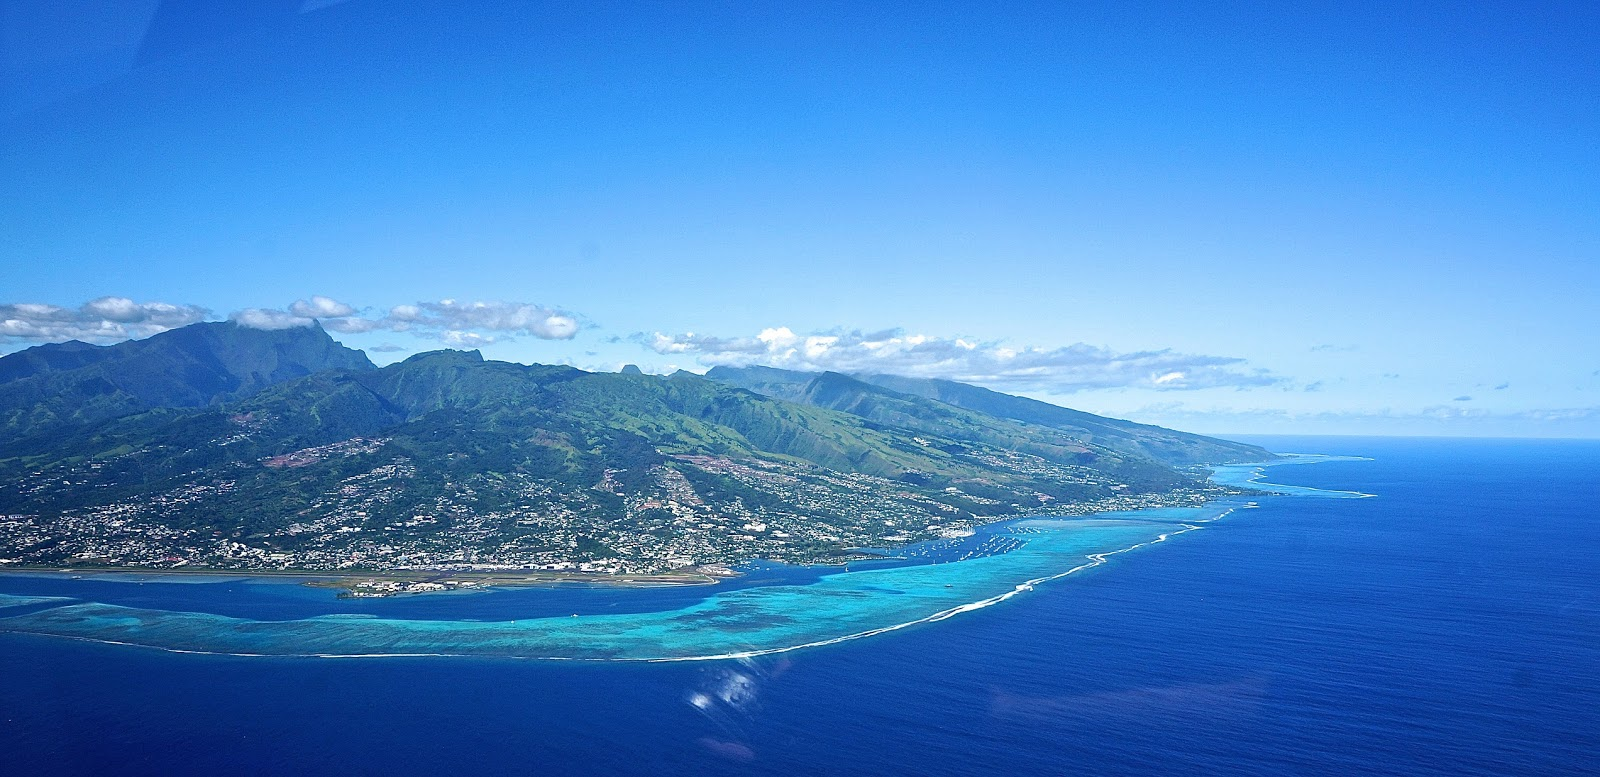 Tahiti moorea Tetiaroa from the sky flying over island and atoll French polynesia www.lexieblush.co.uk